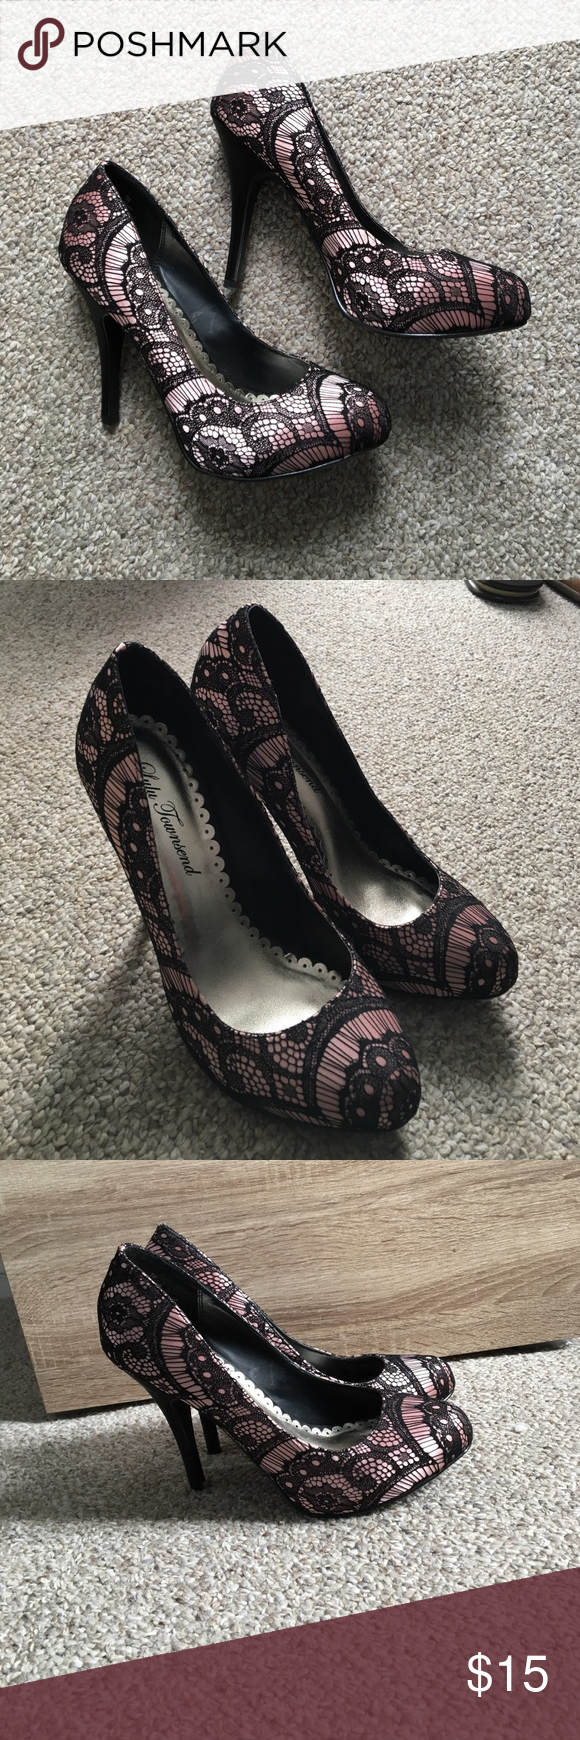 Pink and black lace pumps Thin black heal. Never worn Shoes Heels